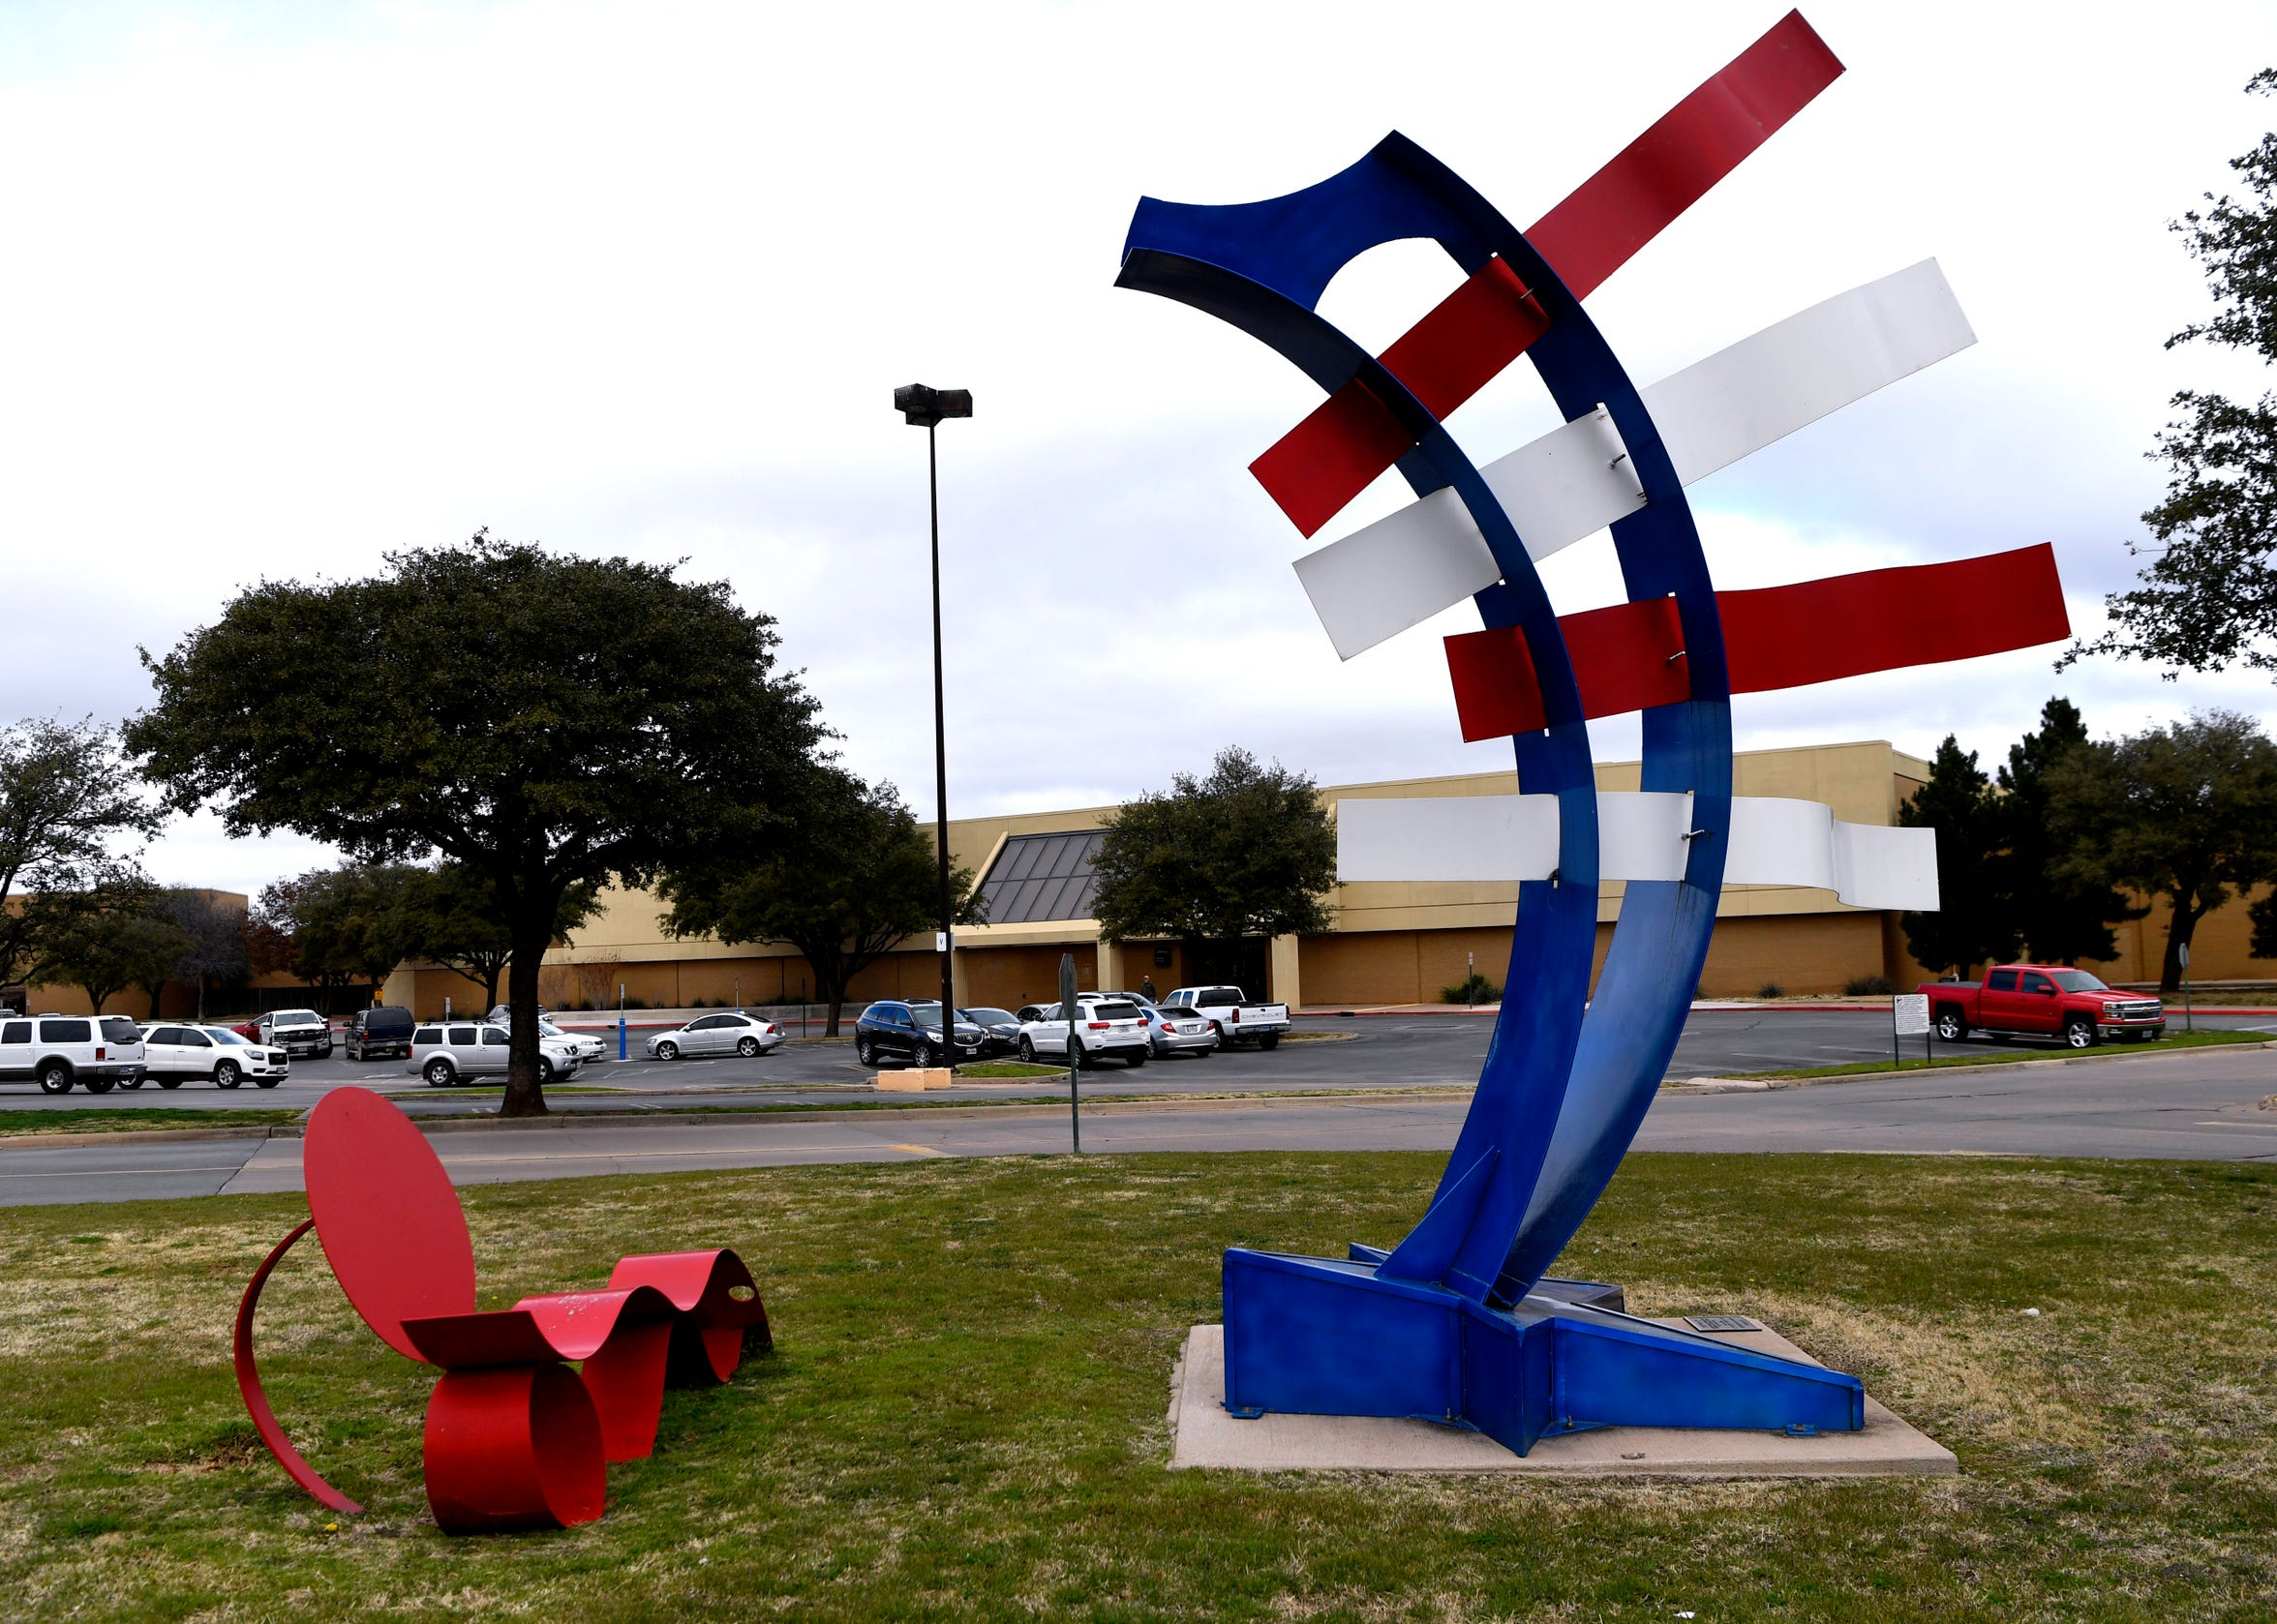 A patriotic sculpture by Nic Noblique stands at the corner of the Mall of Abilene property along Buffalo Gap Road.